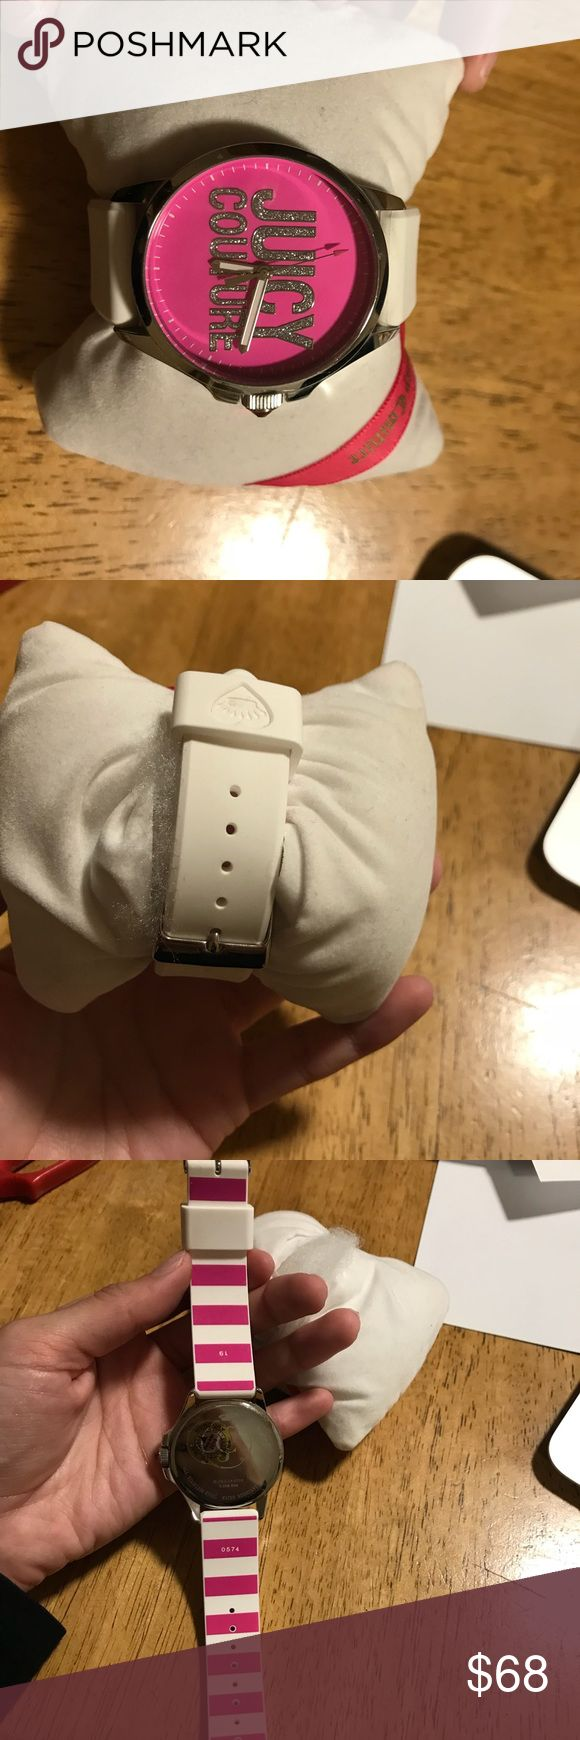 Juicy Couture Watch Brand New , Never Worn , With Box Juicy Couture Watch Juicy Couture Accessories Watches